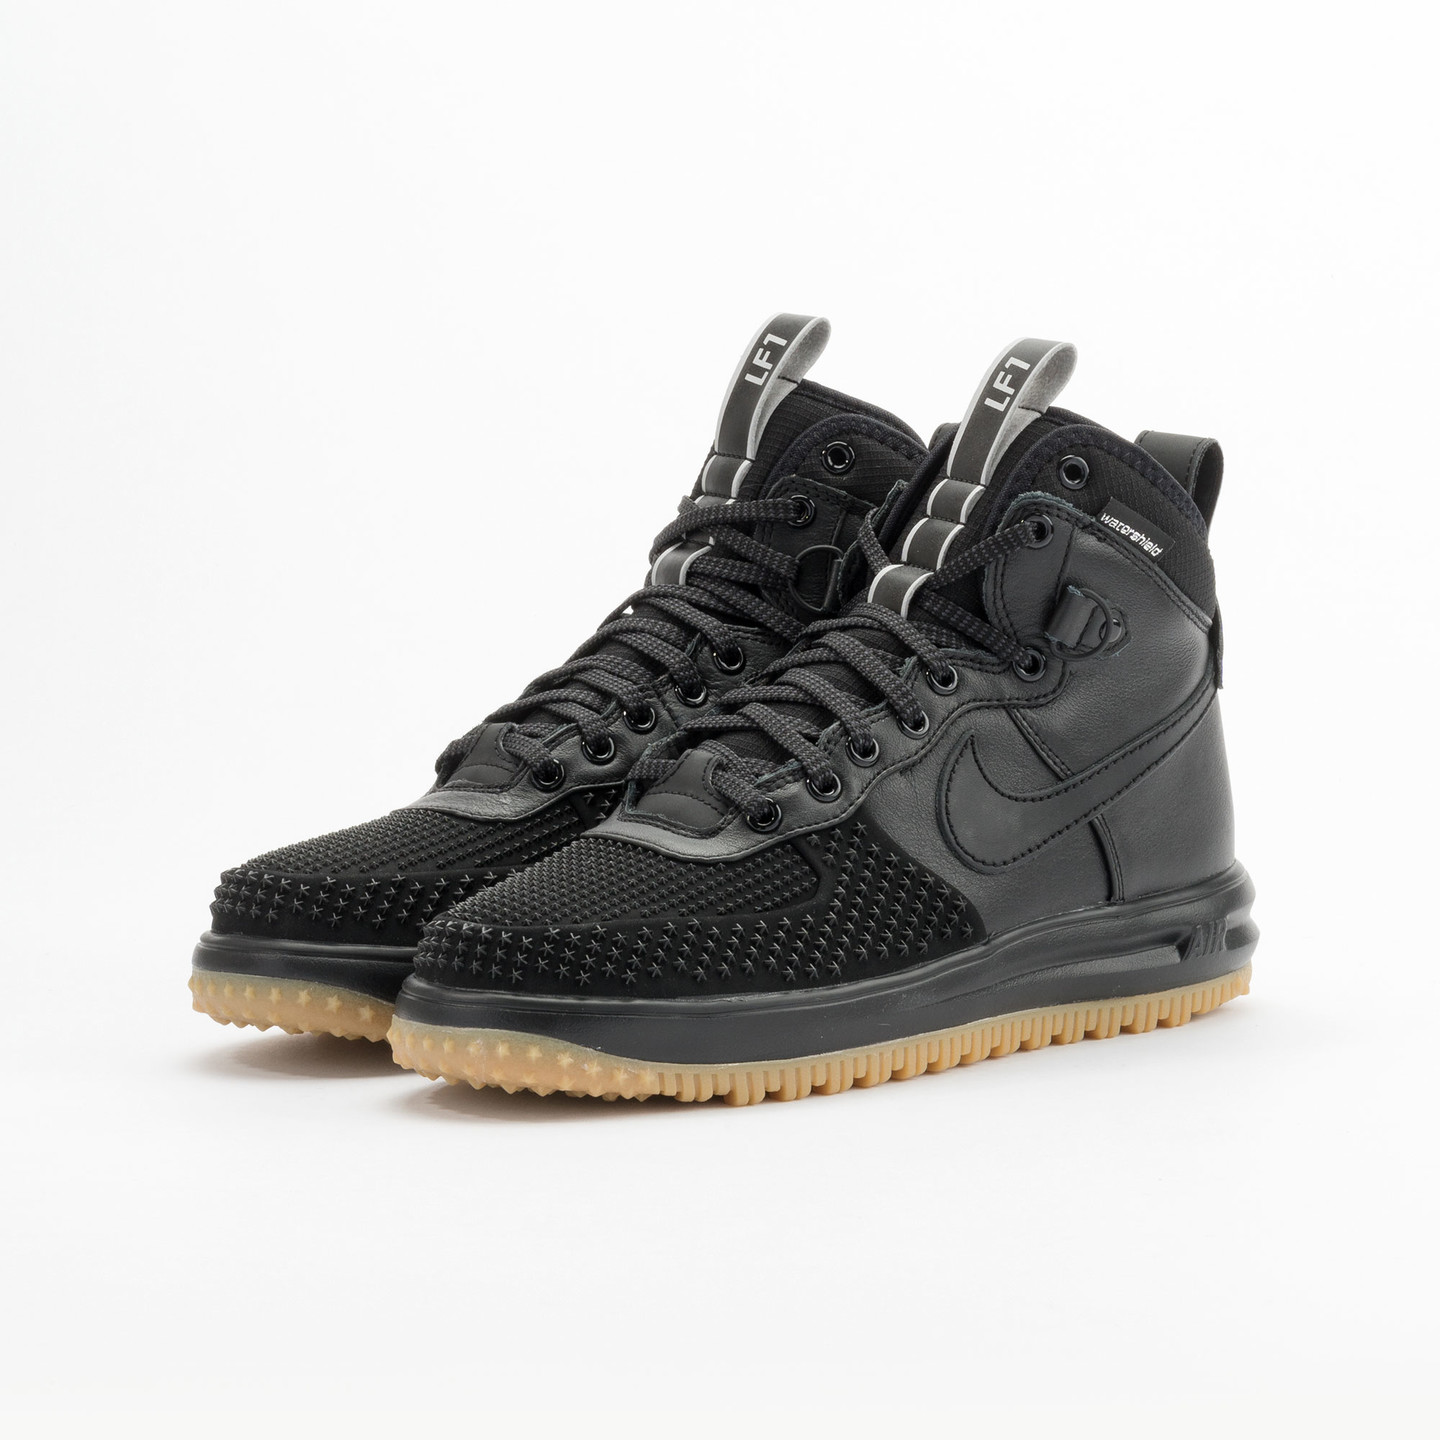 Nike Lunar Force 1 Duckboot Black / Black / Gum 805899-003-42